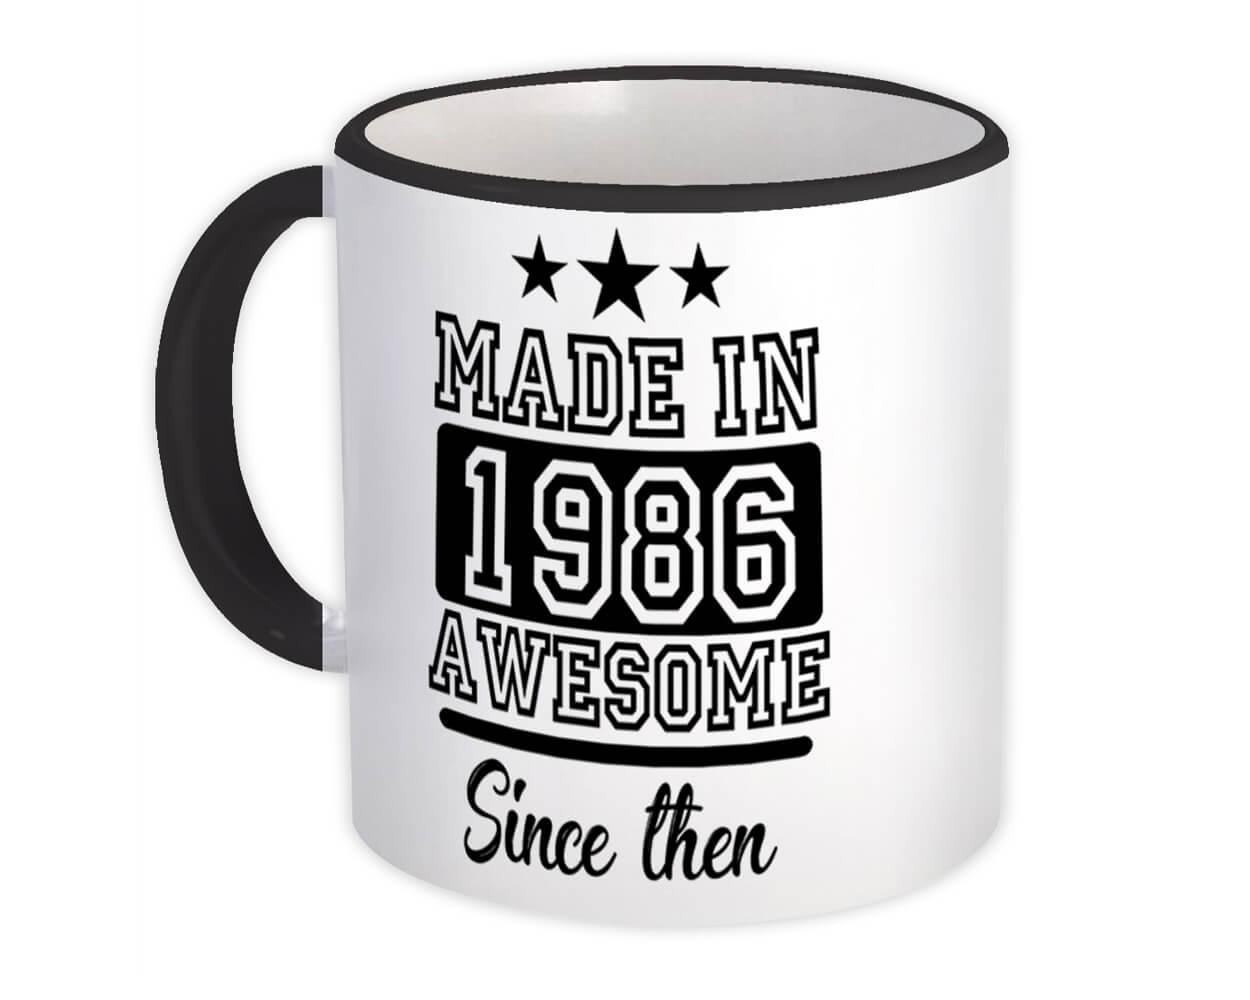 Made in 1986 : Gift Mug Awesome Since Then Birthday Year Born